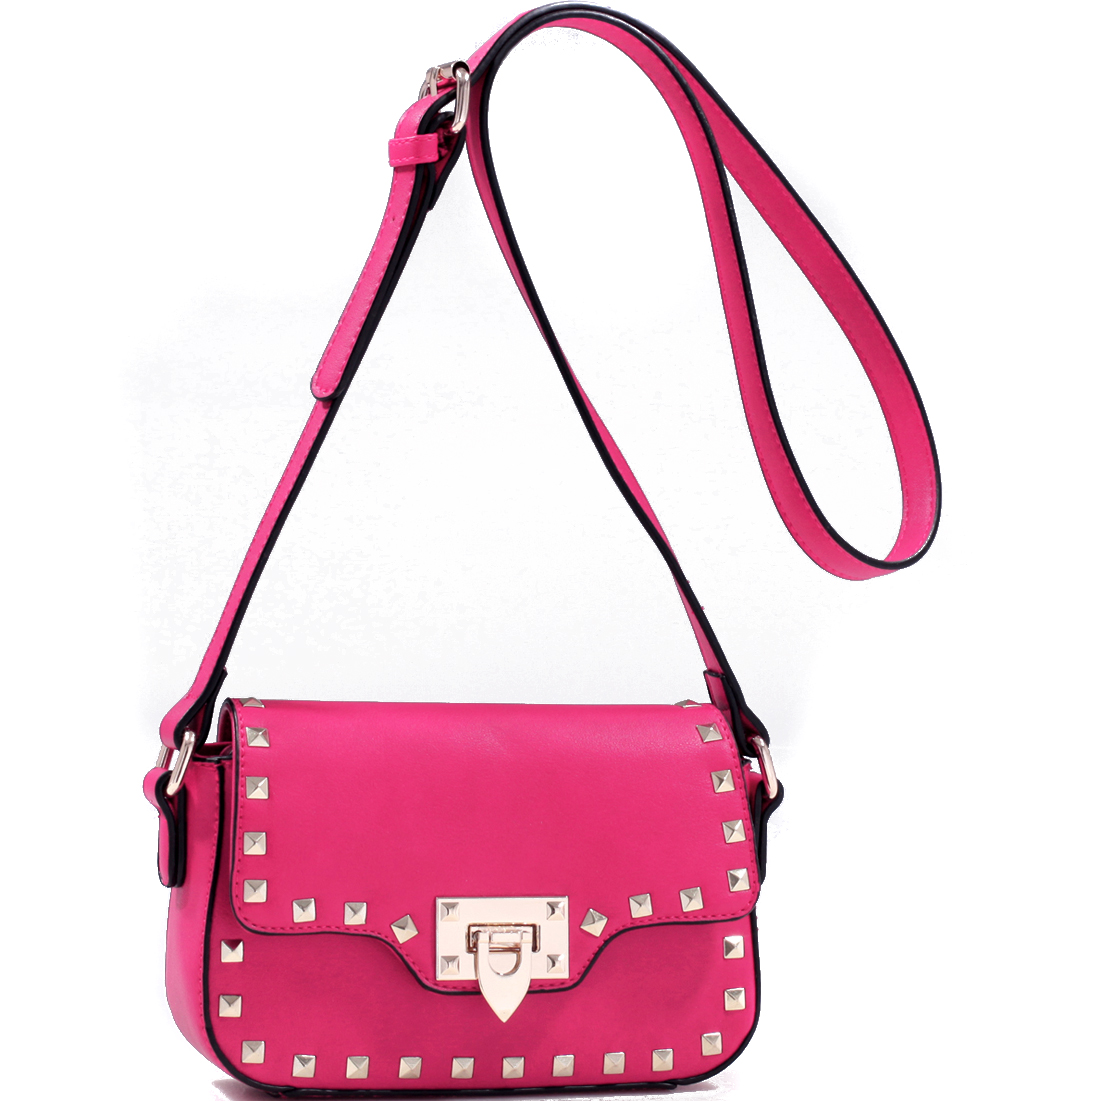 Studded Messenger Bag with Adjustable Buckle Strap